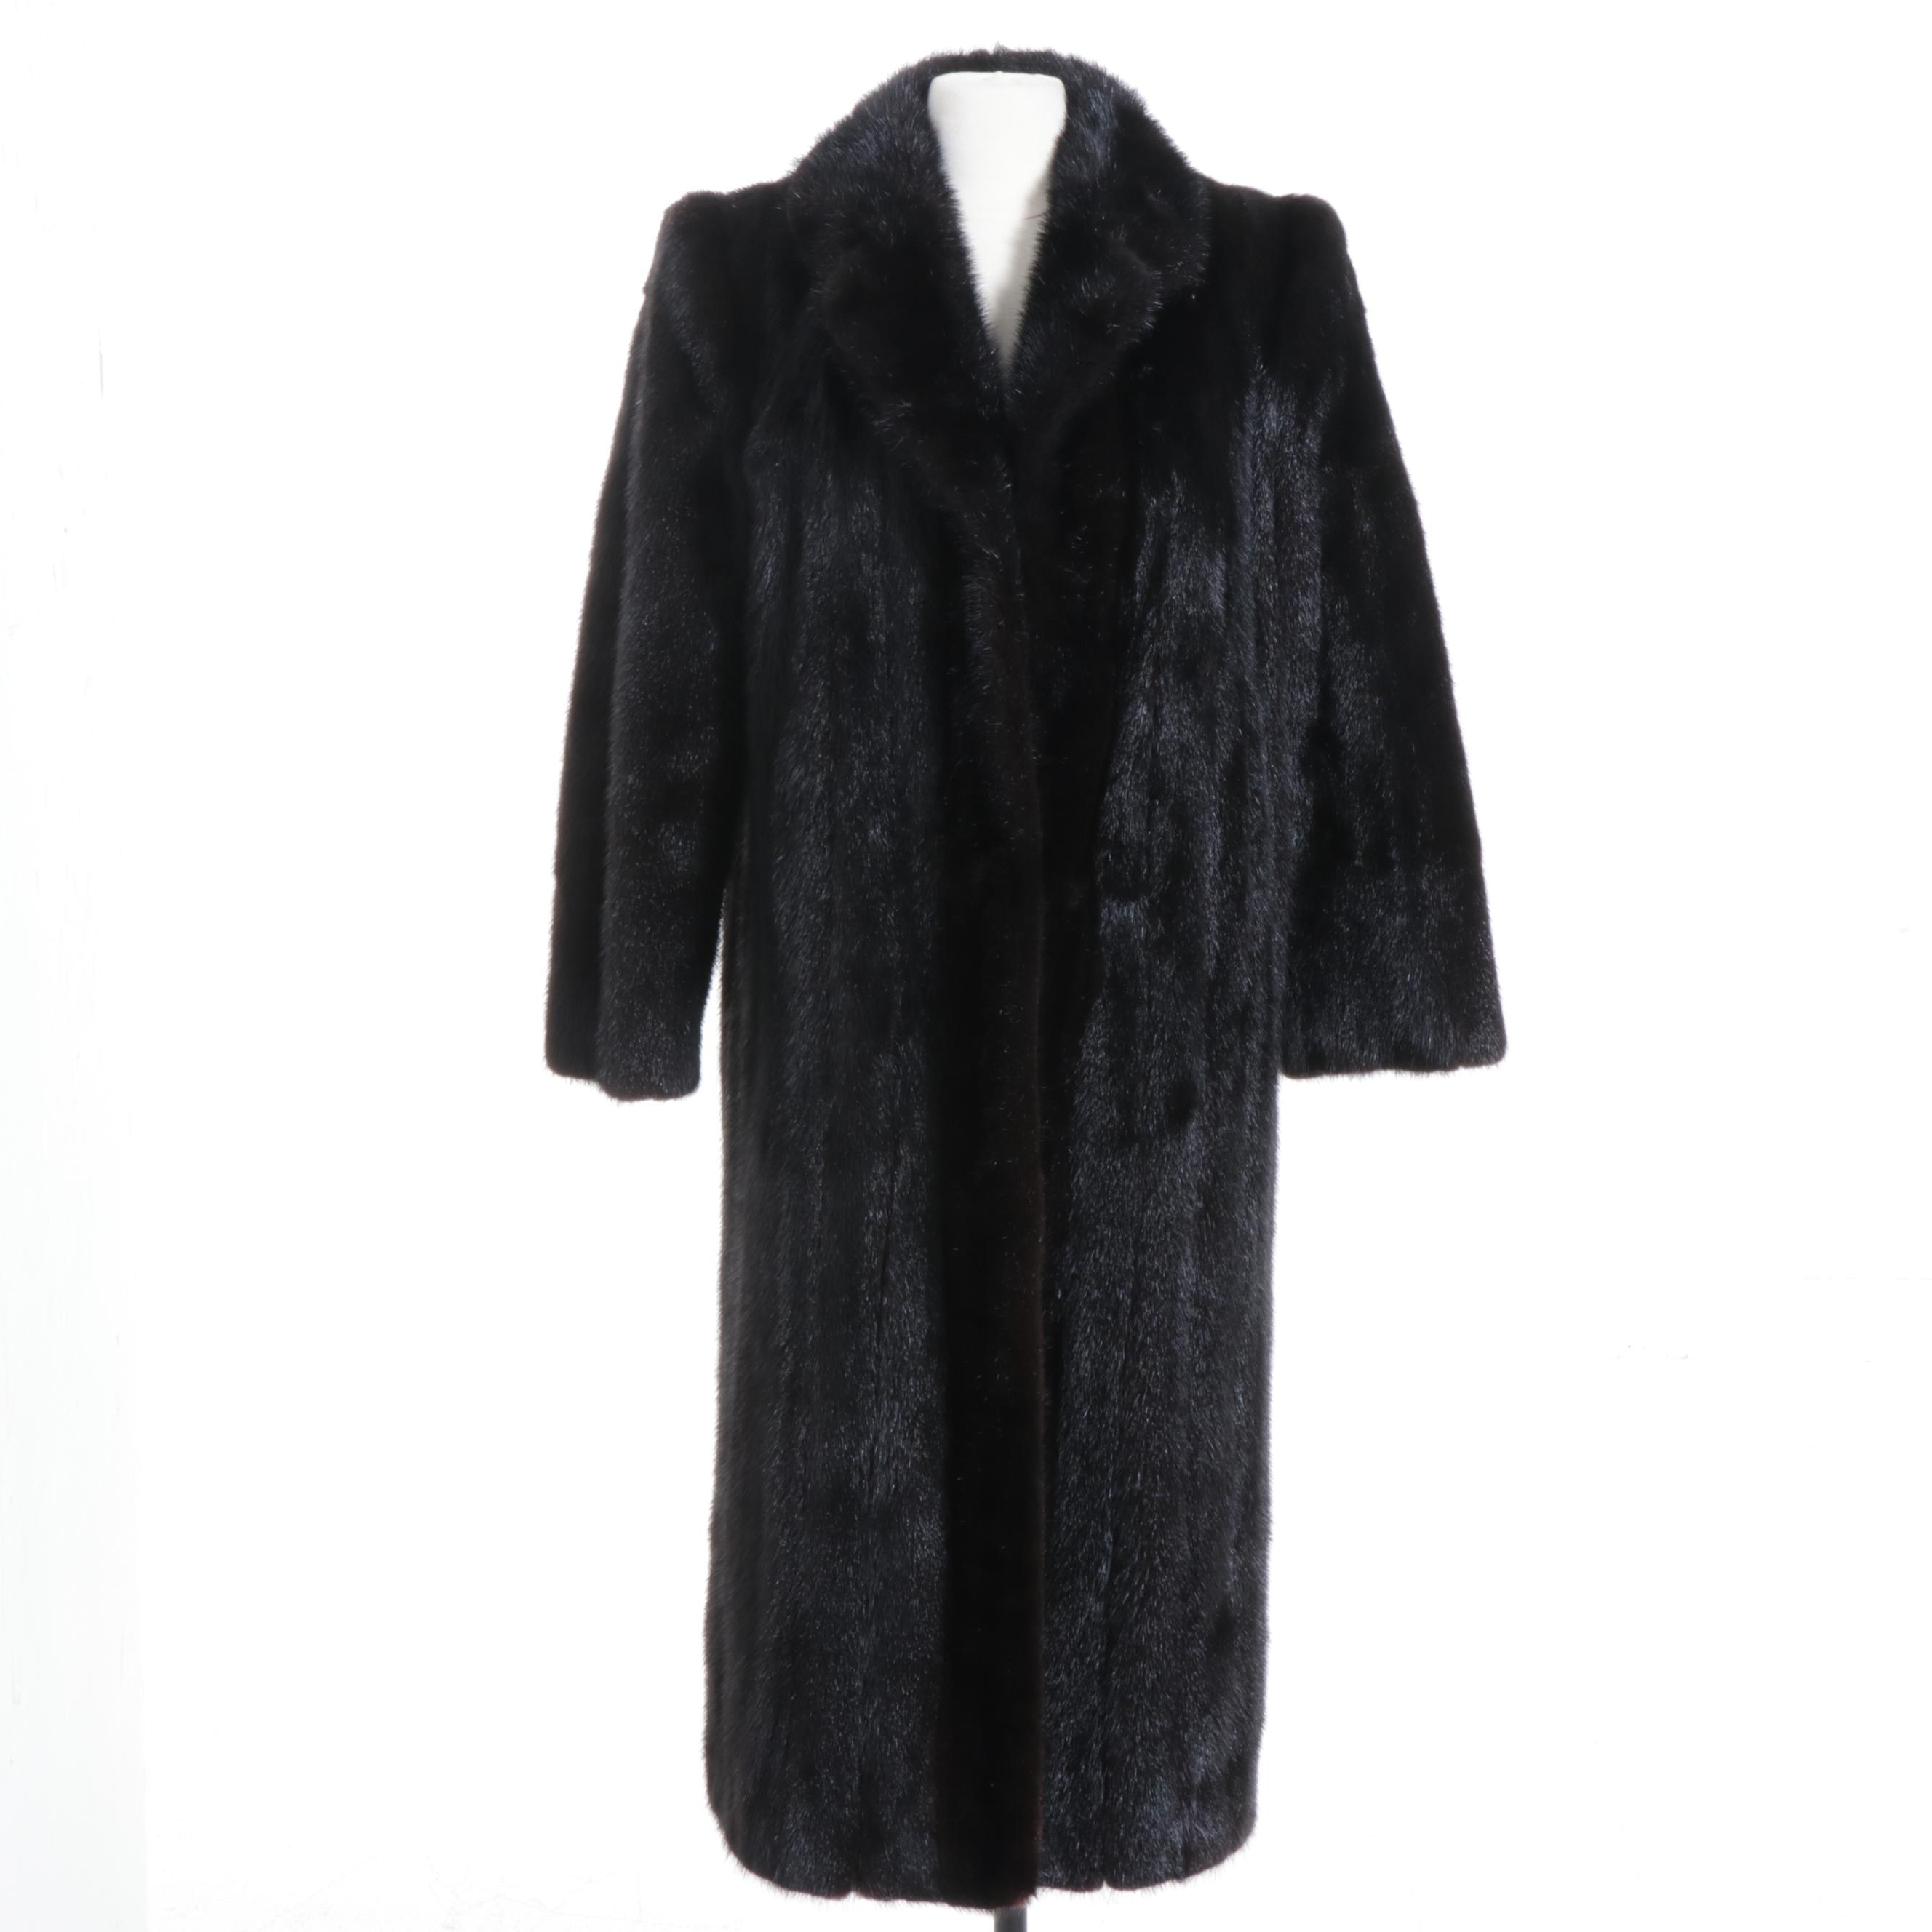 Dark Mahogany Mink Fur Coat